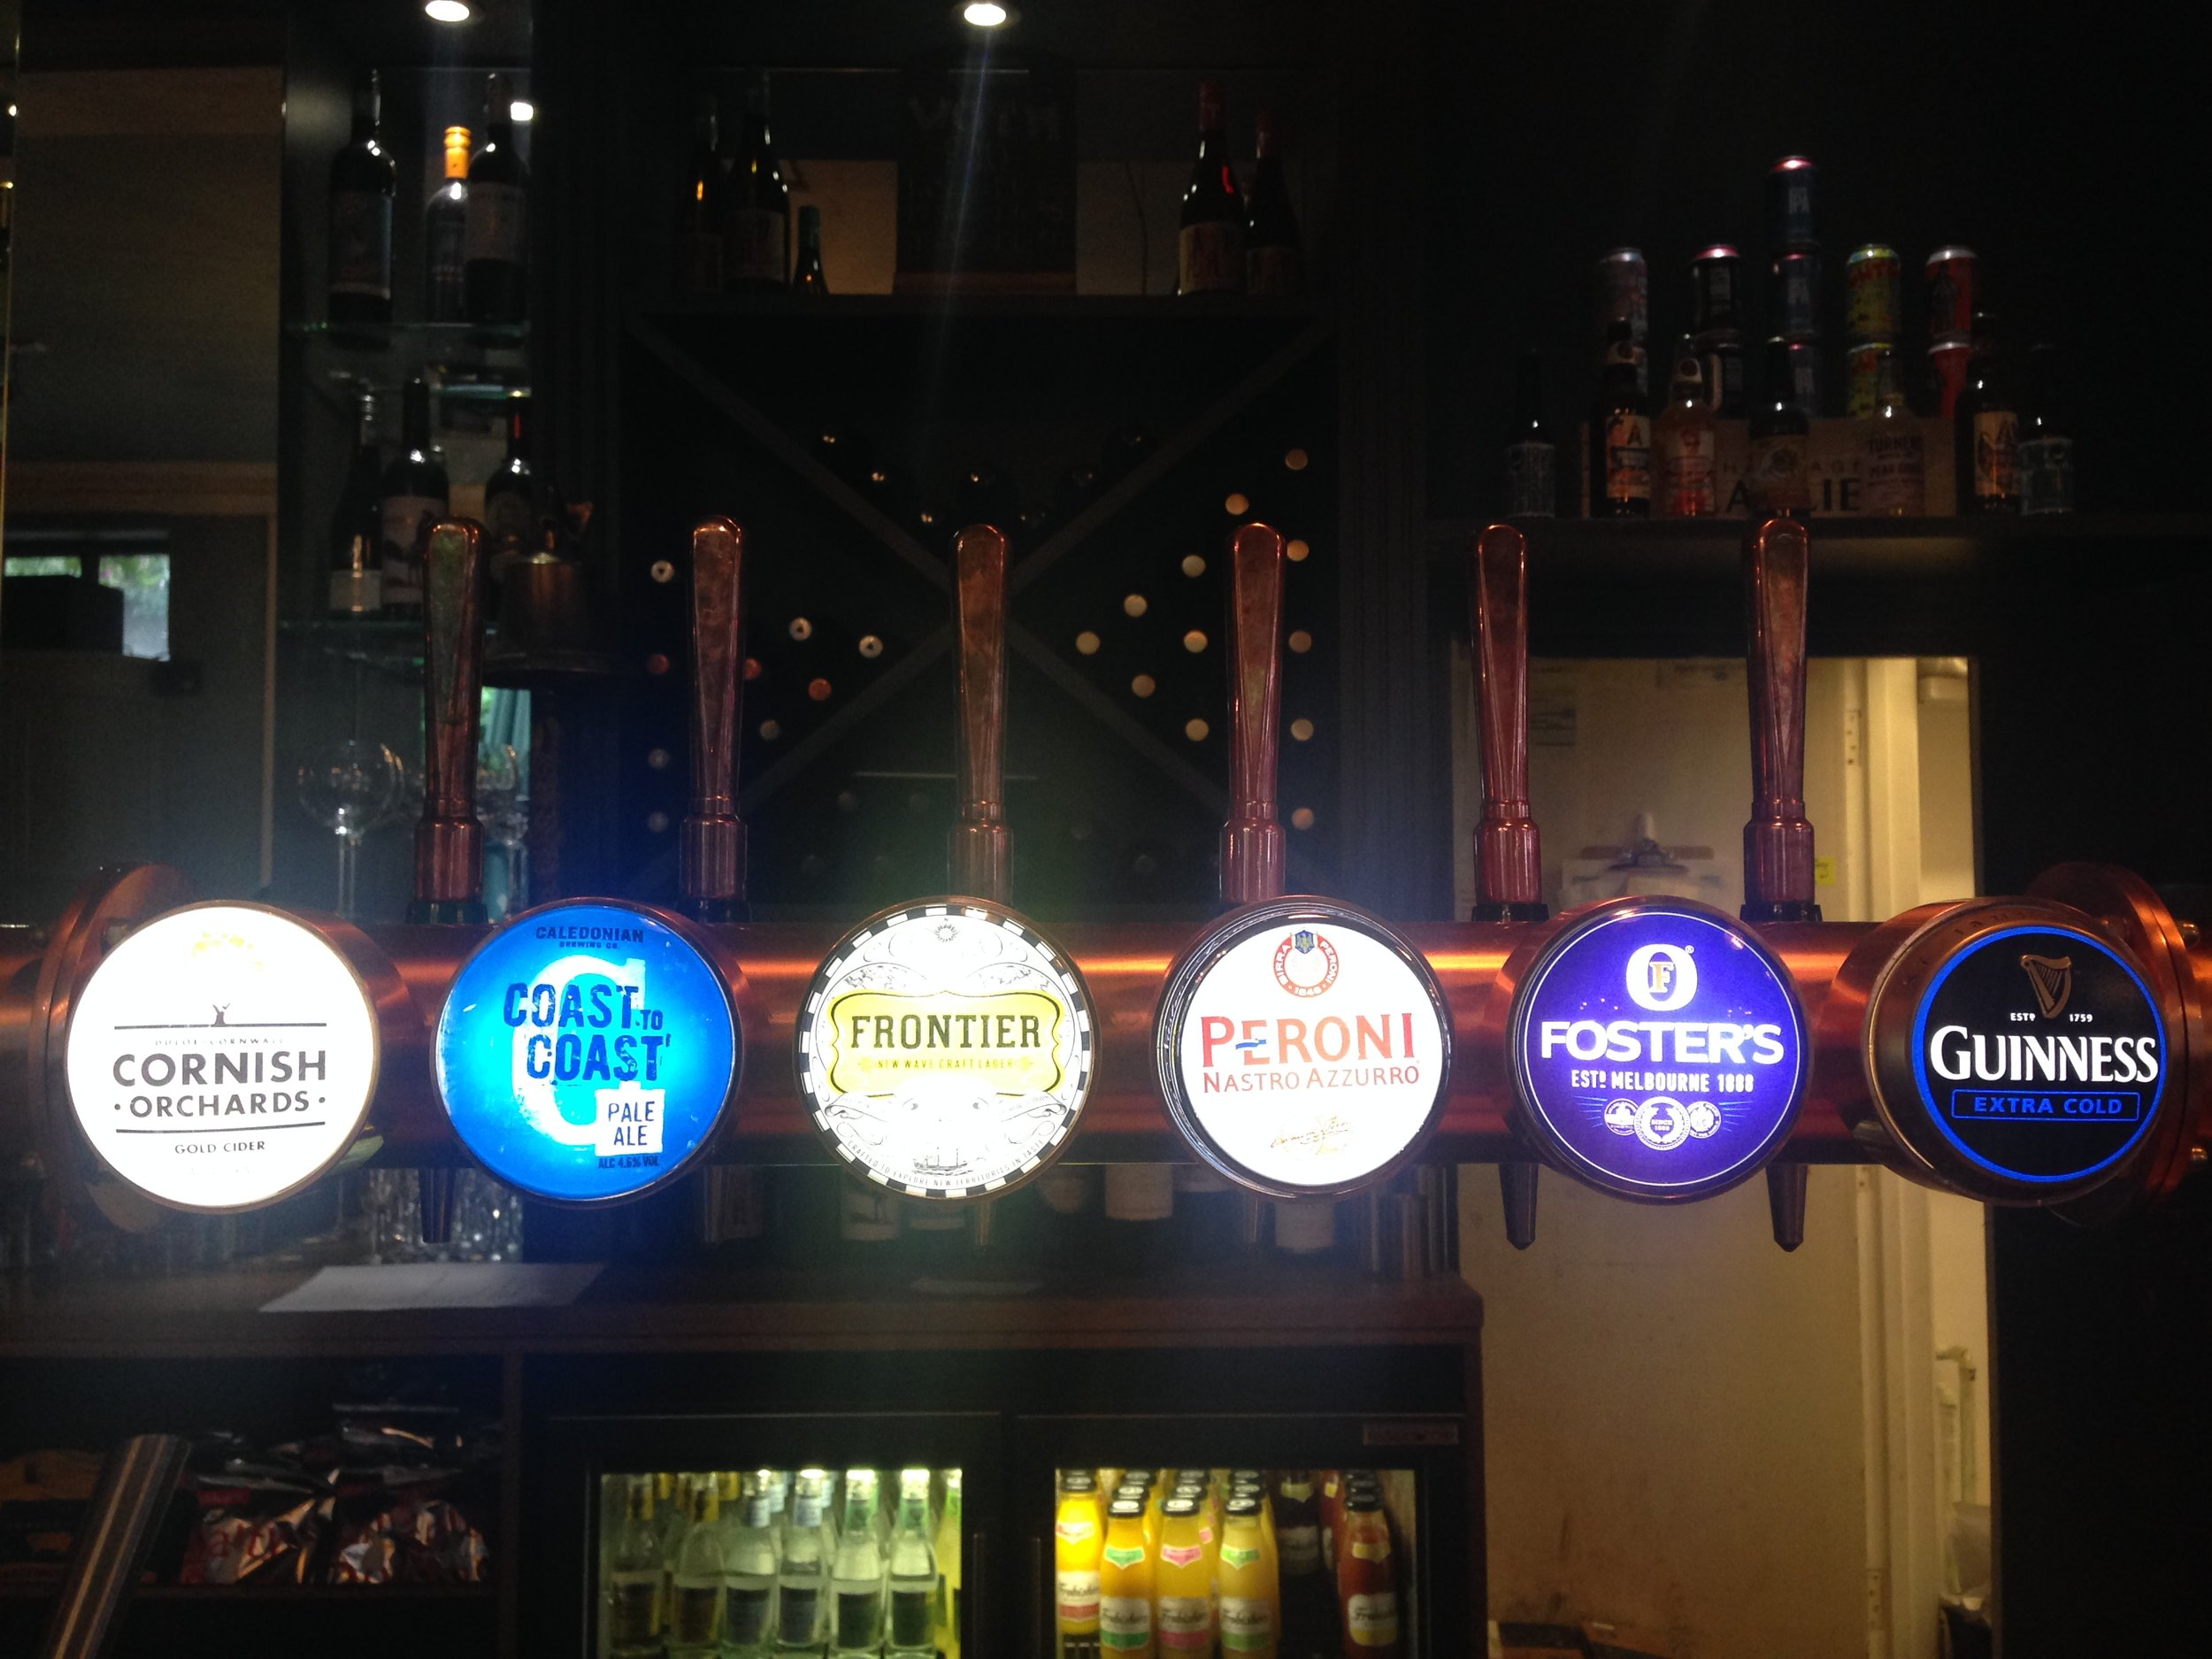 ^ Which one of these taps is the odd one out?